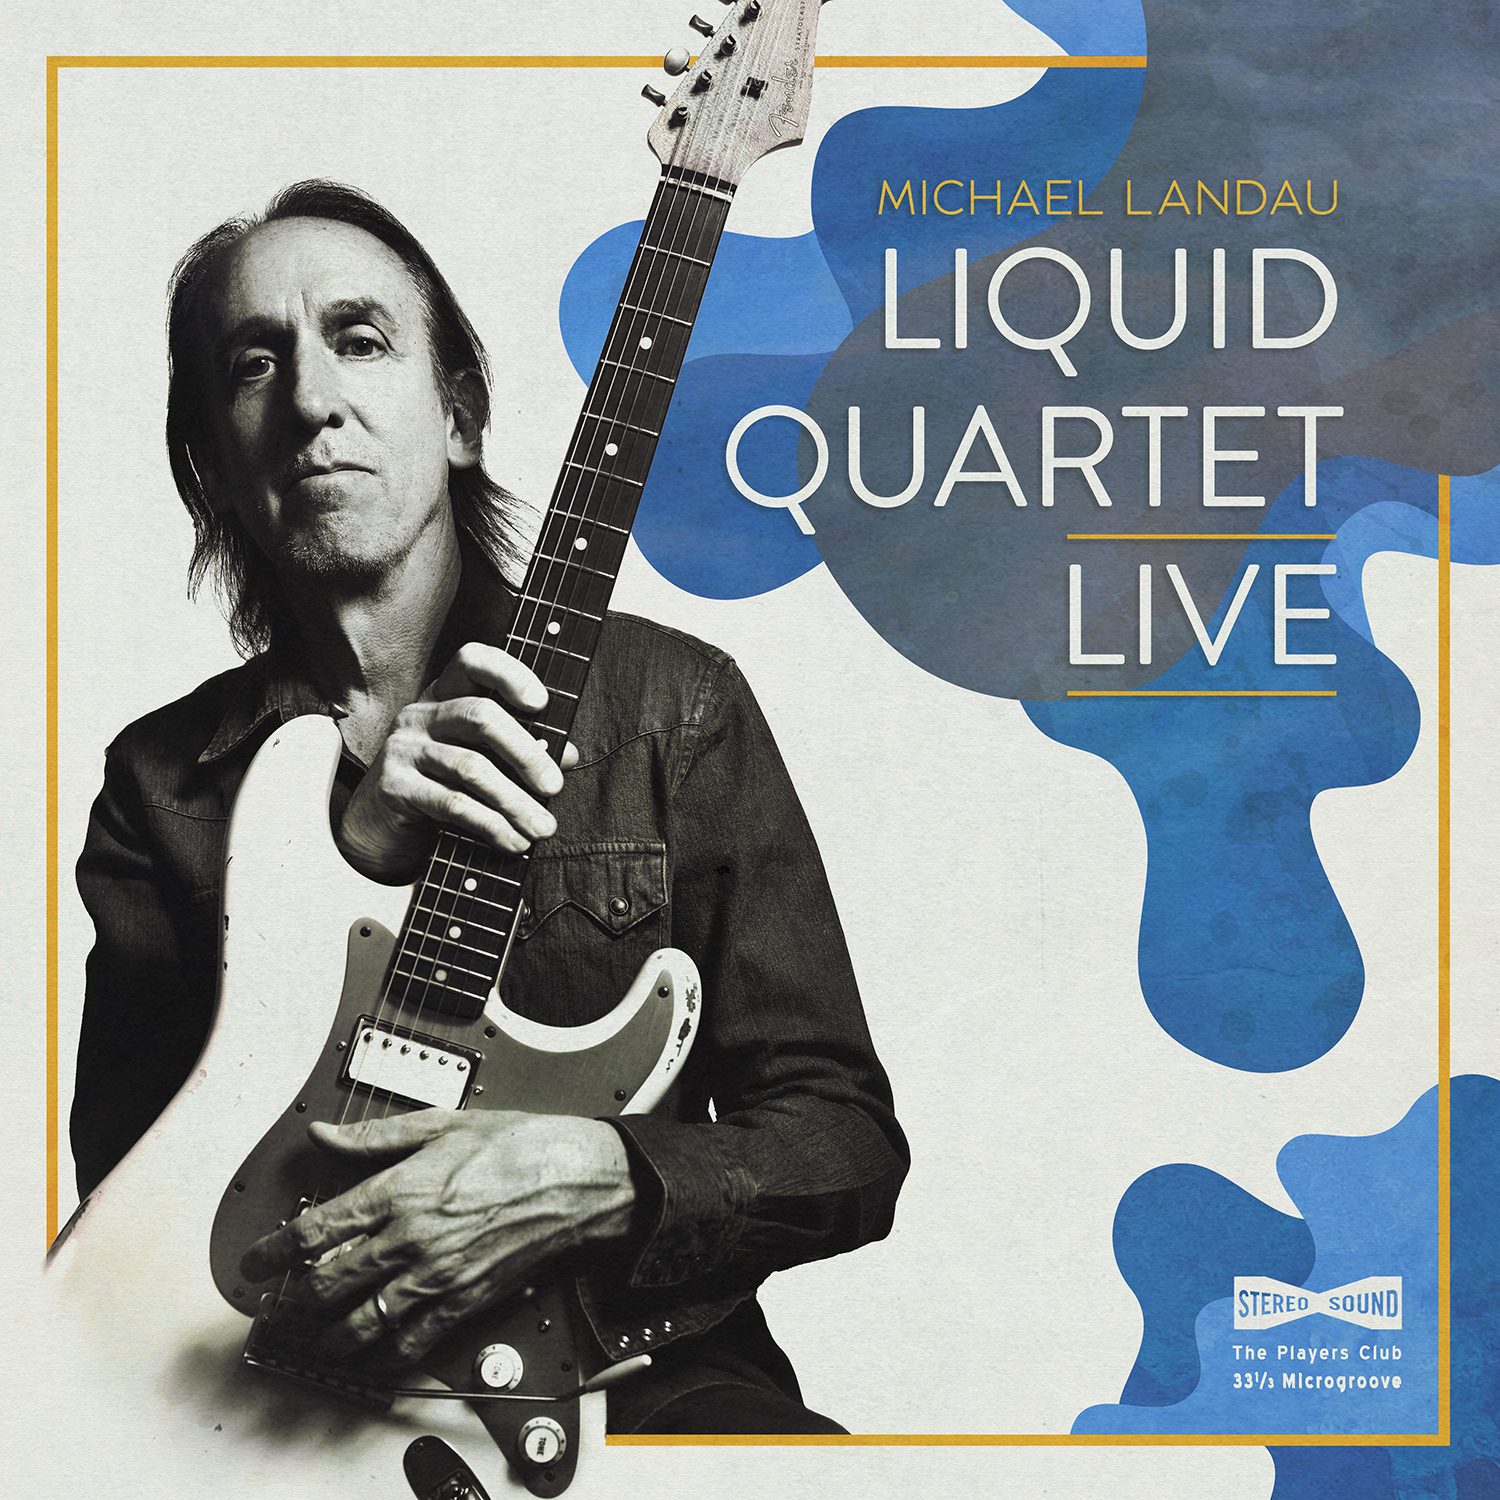 <h5>Michael Landau<br>Liquid Quarted Live</h5>